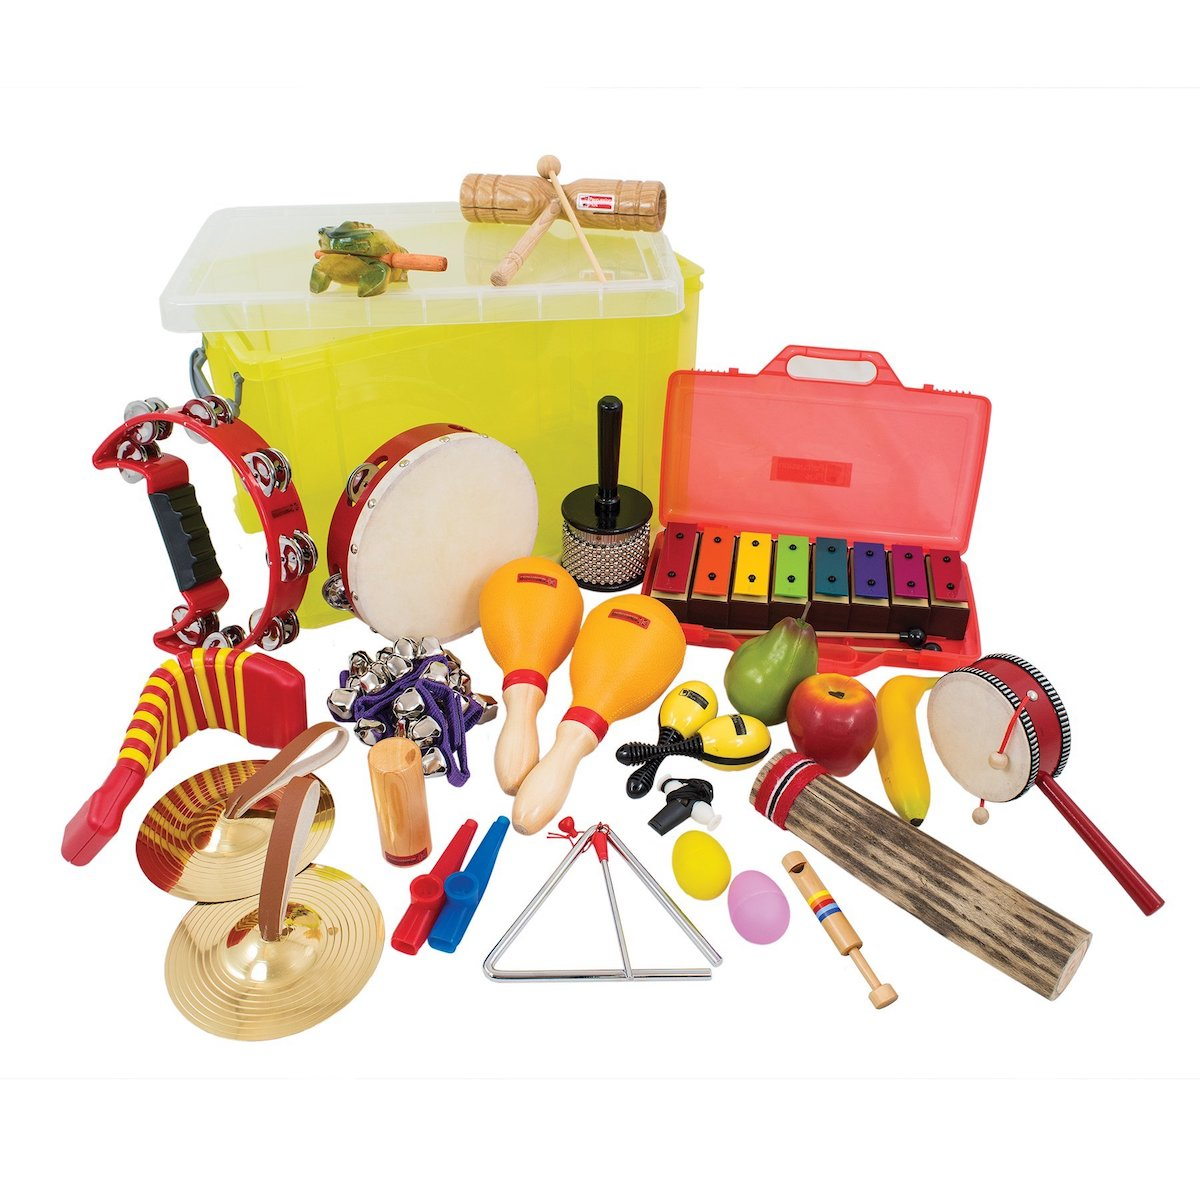 Percussion Workshop Sensory Pack